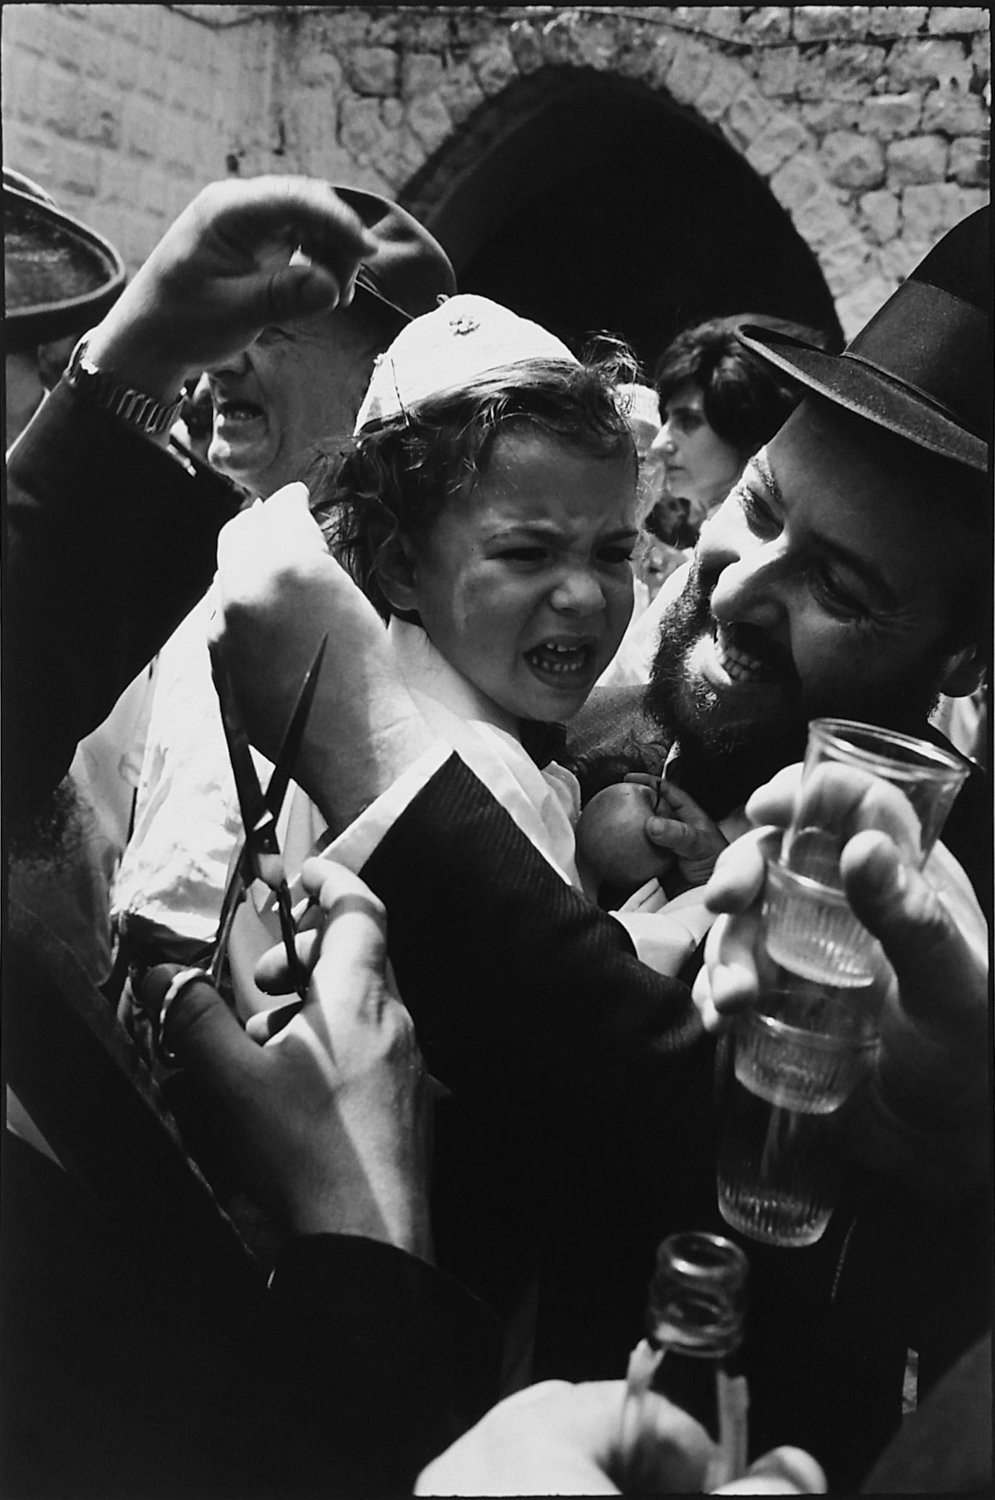 Leonard Freed's 1967 photograph of the Jewish holiday Lag B'omer is included in the exhibition 'Leonard Freed: Israel Magazine 1967-1968,' on display at the Hebrew Home at Riverdale's Derfner Judaica Museum through Jan. 5.